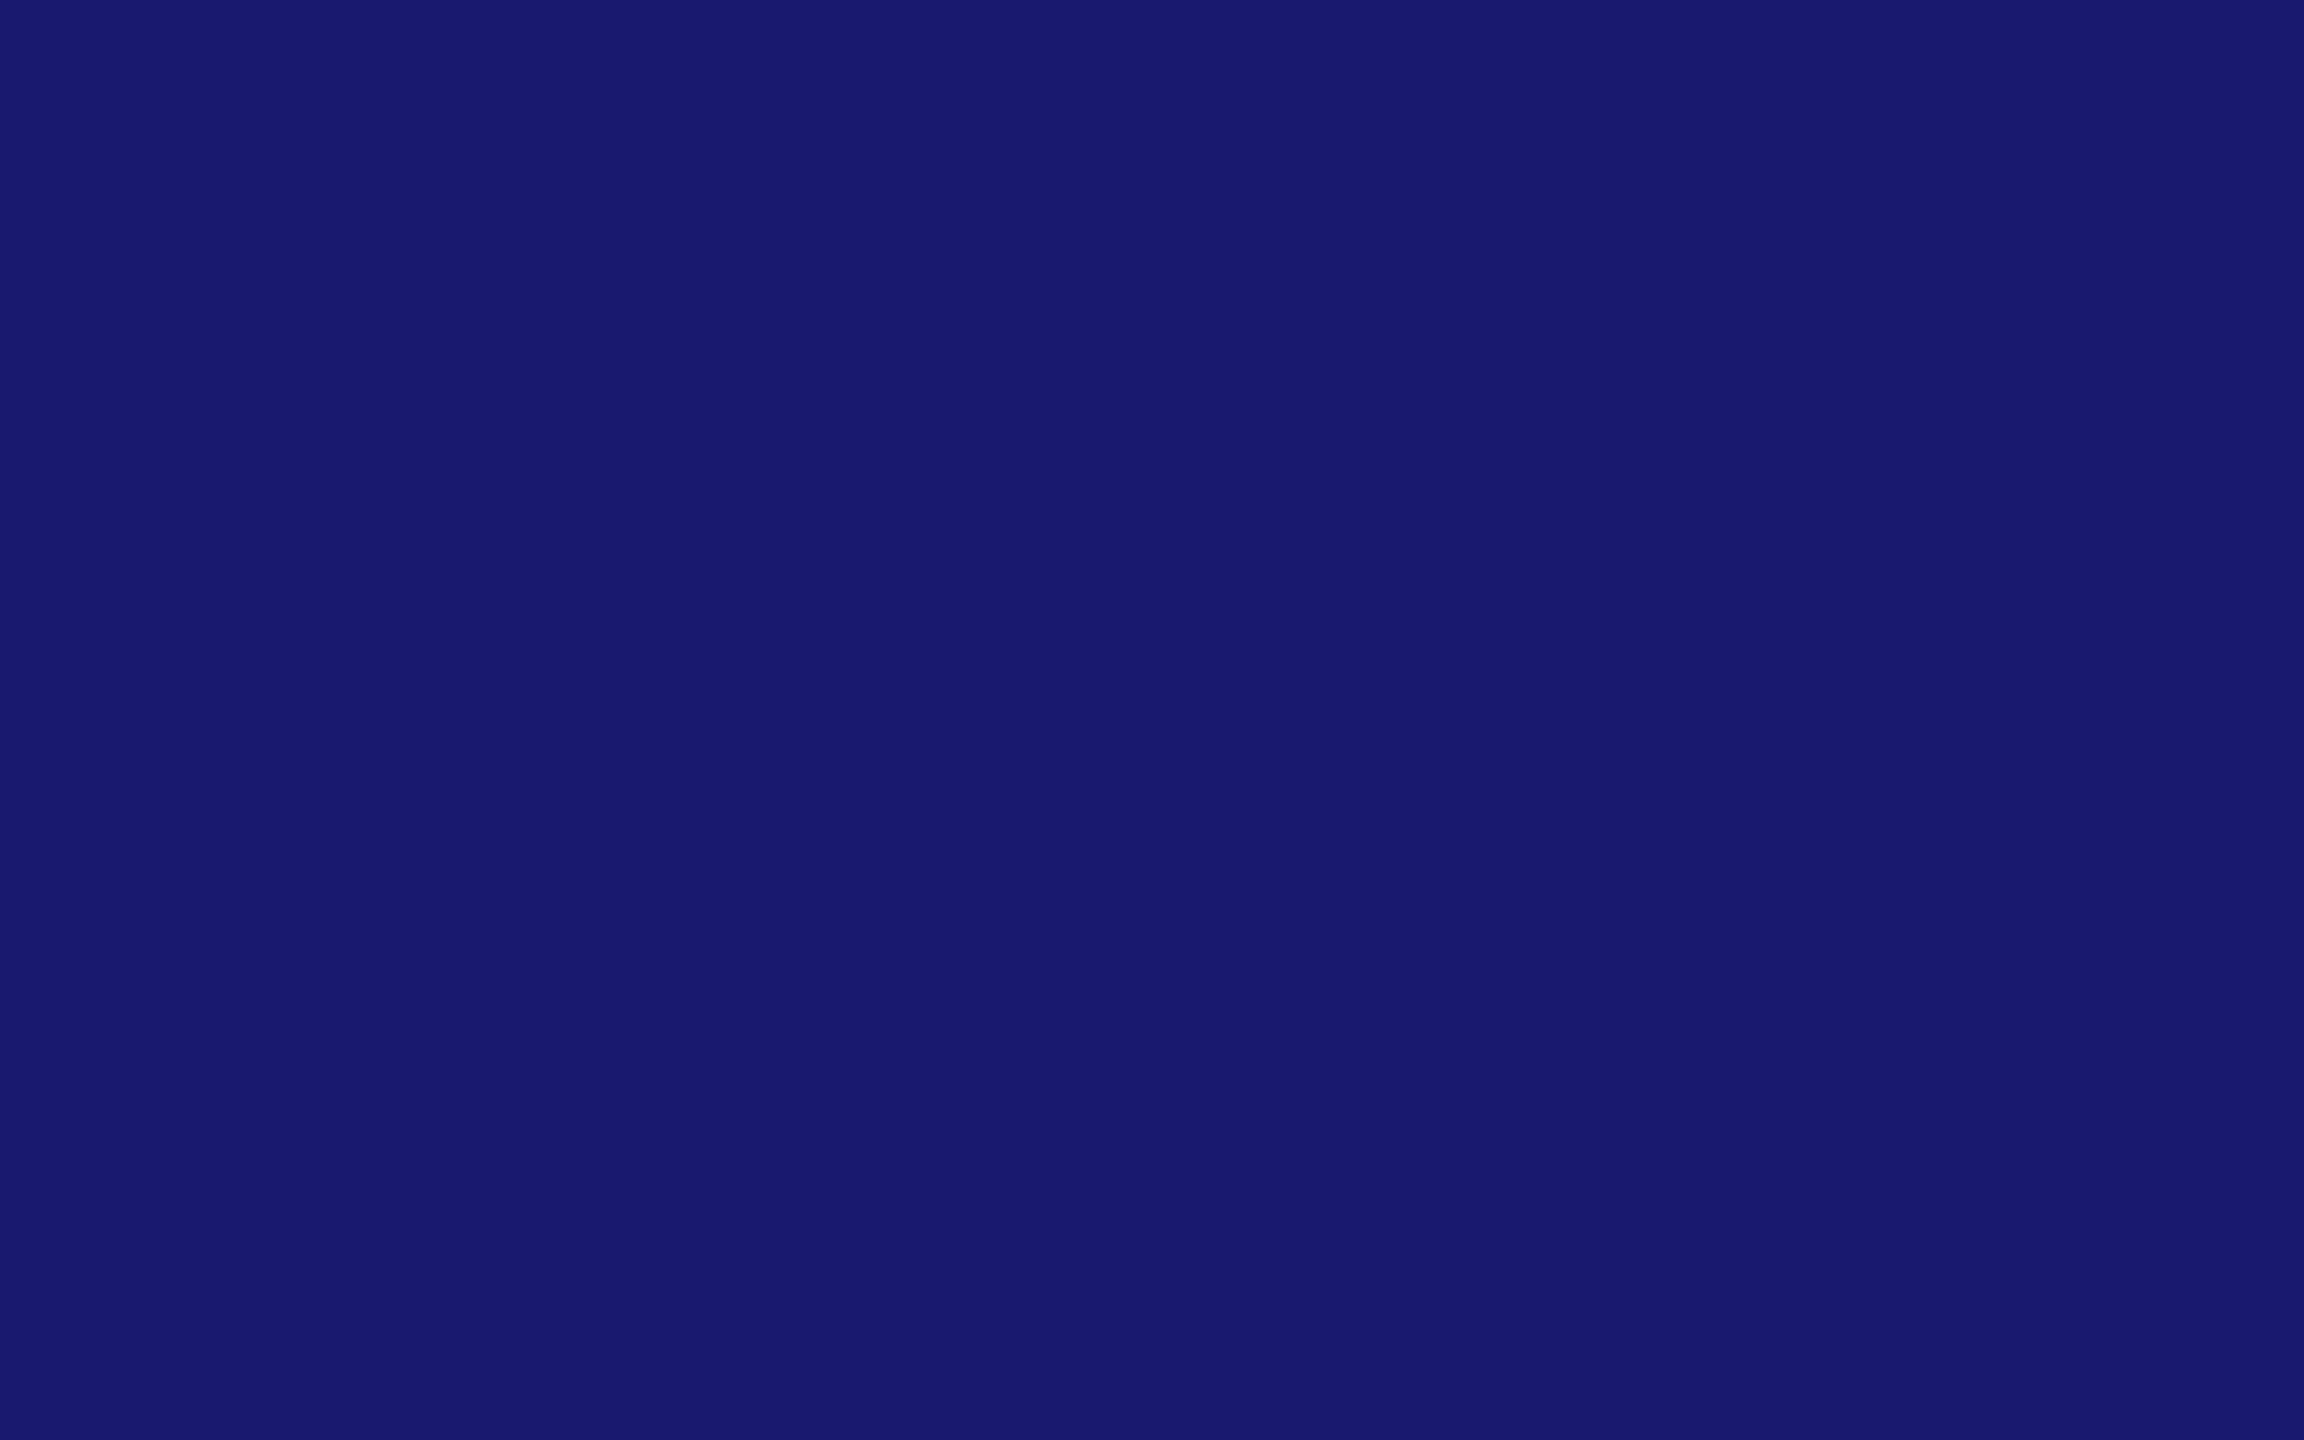 2304x1440 Midnight Blue Solid Color Background